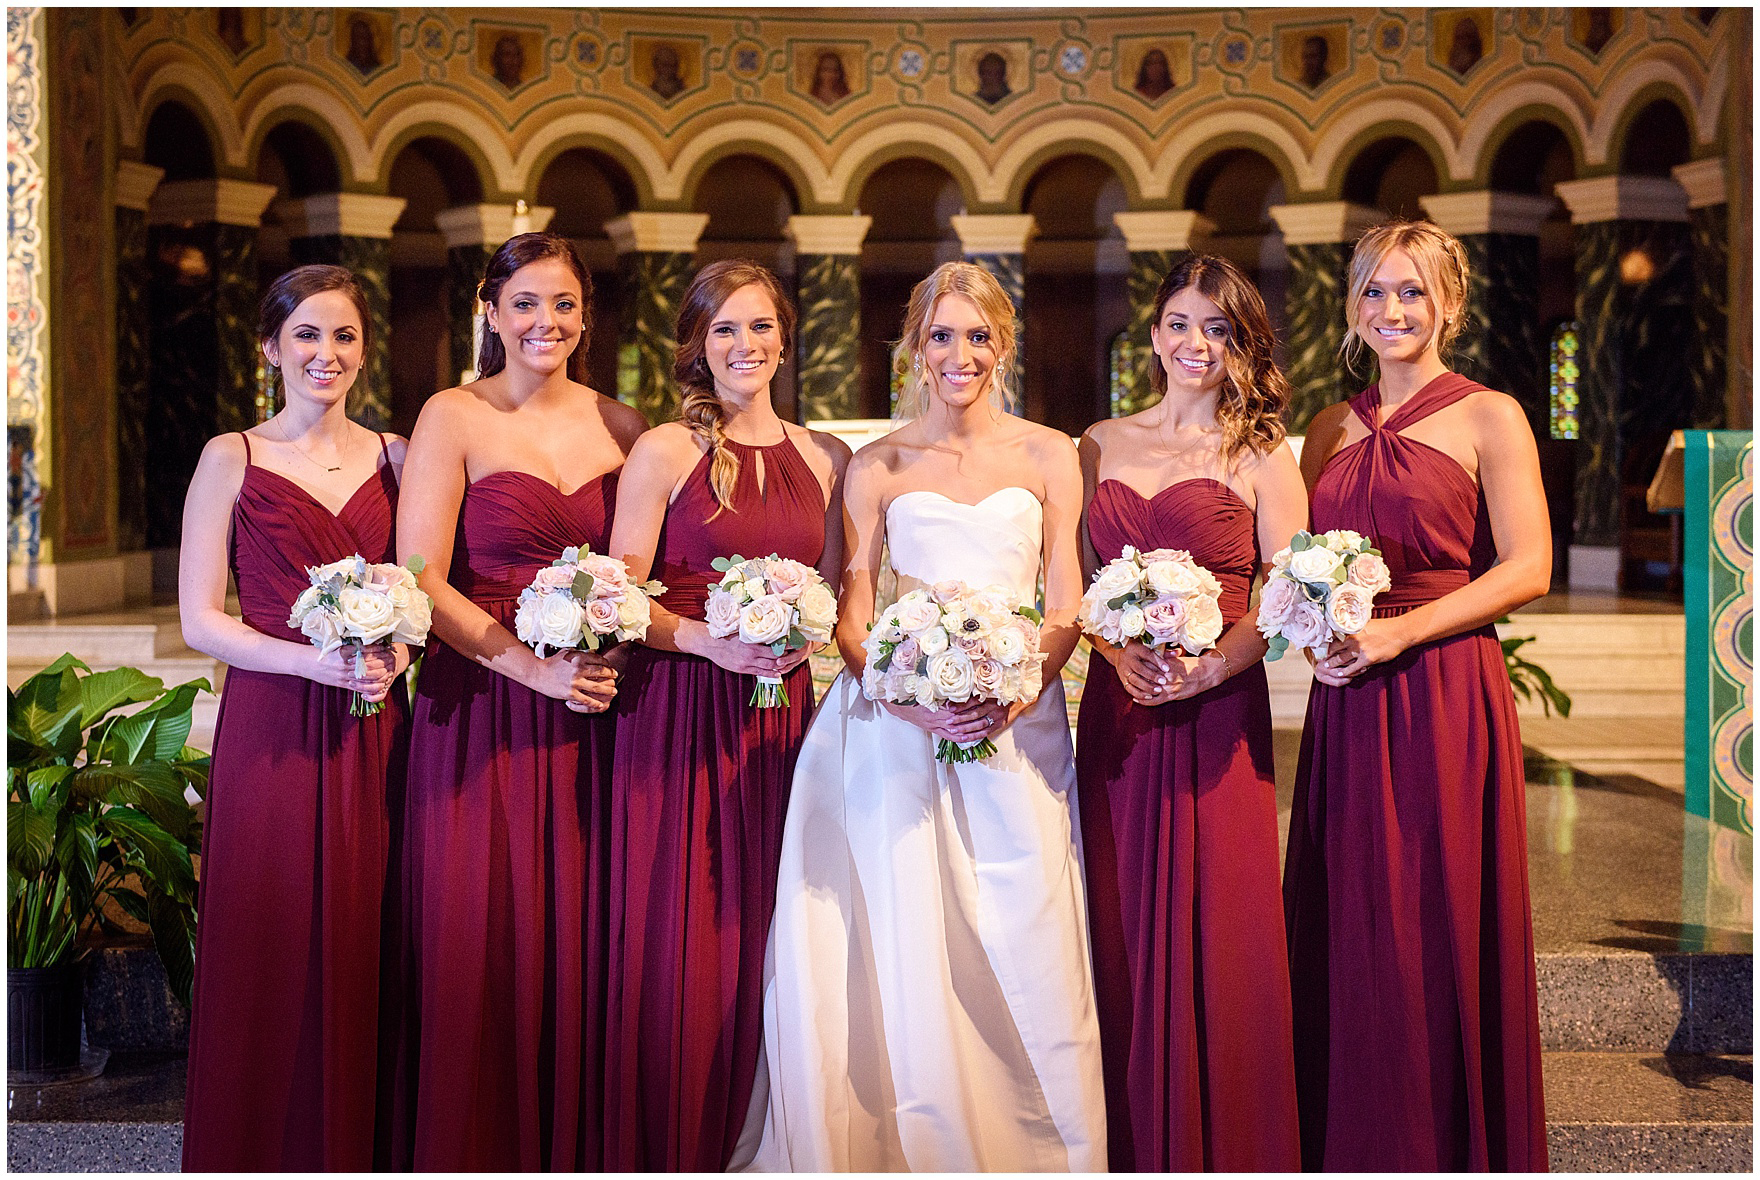 The bride and bridesmaids pose at the church during a St. Clement Germania Place Chicago wedding.